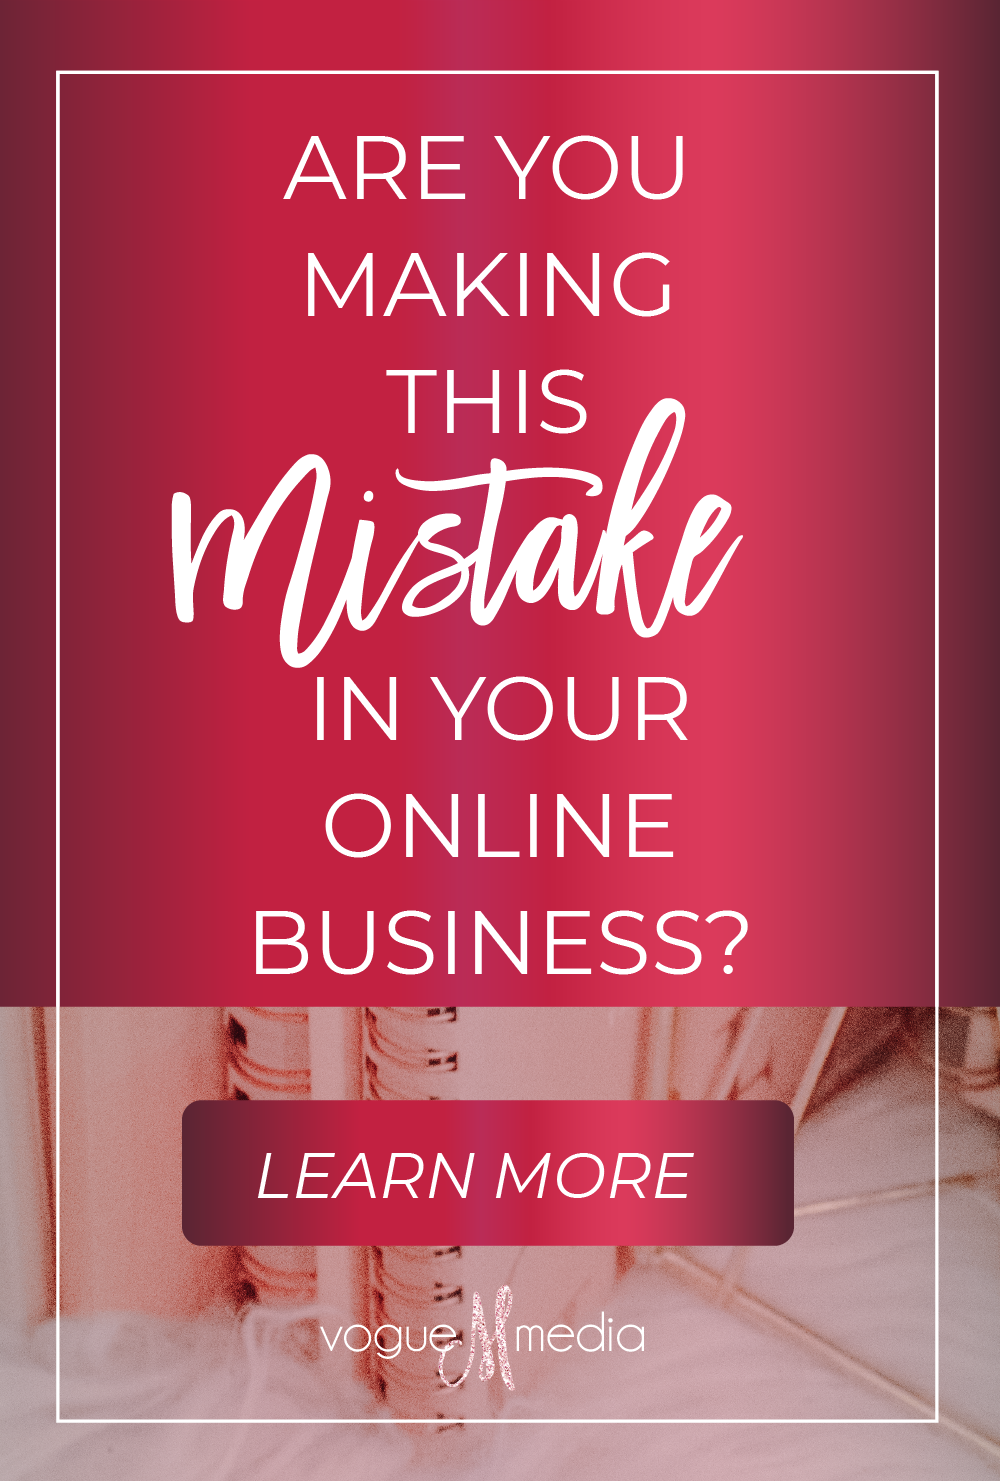 Are you making this mistake in your online business?